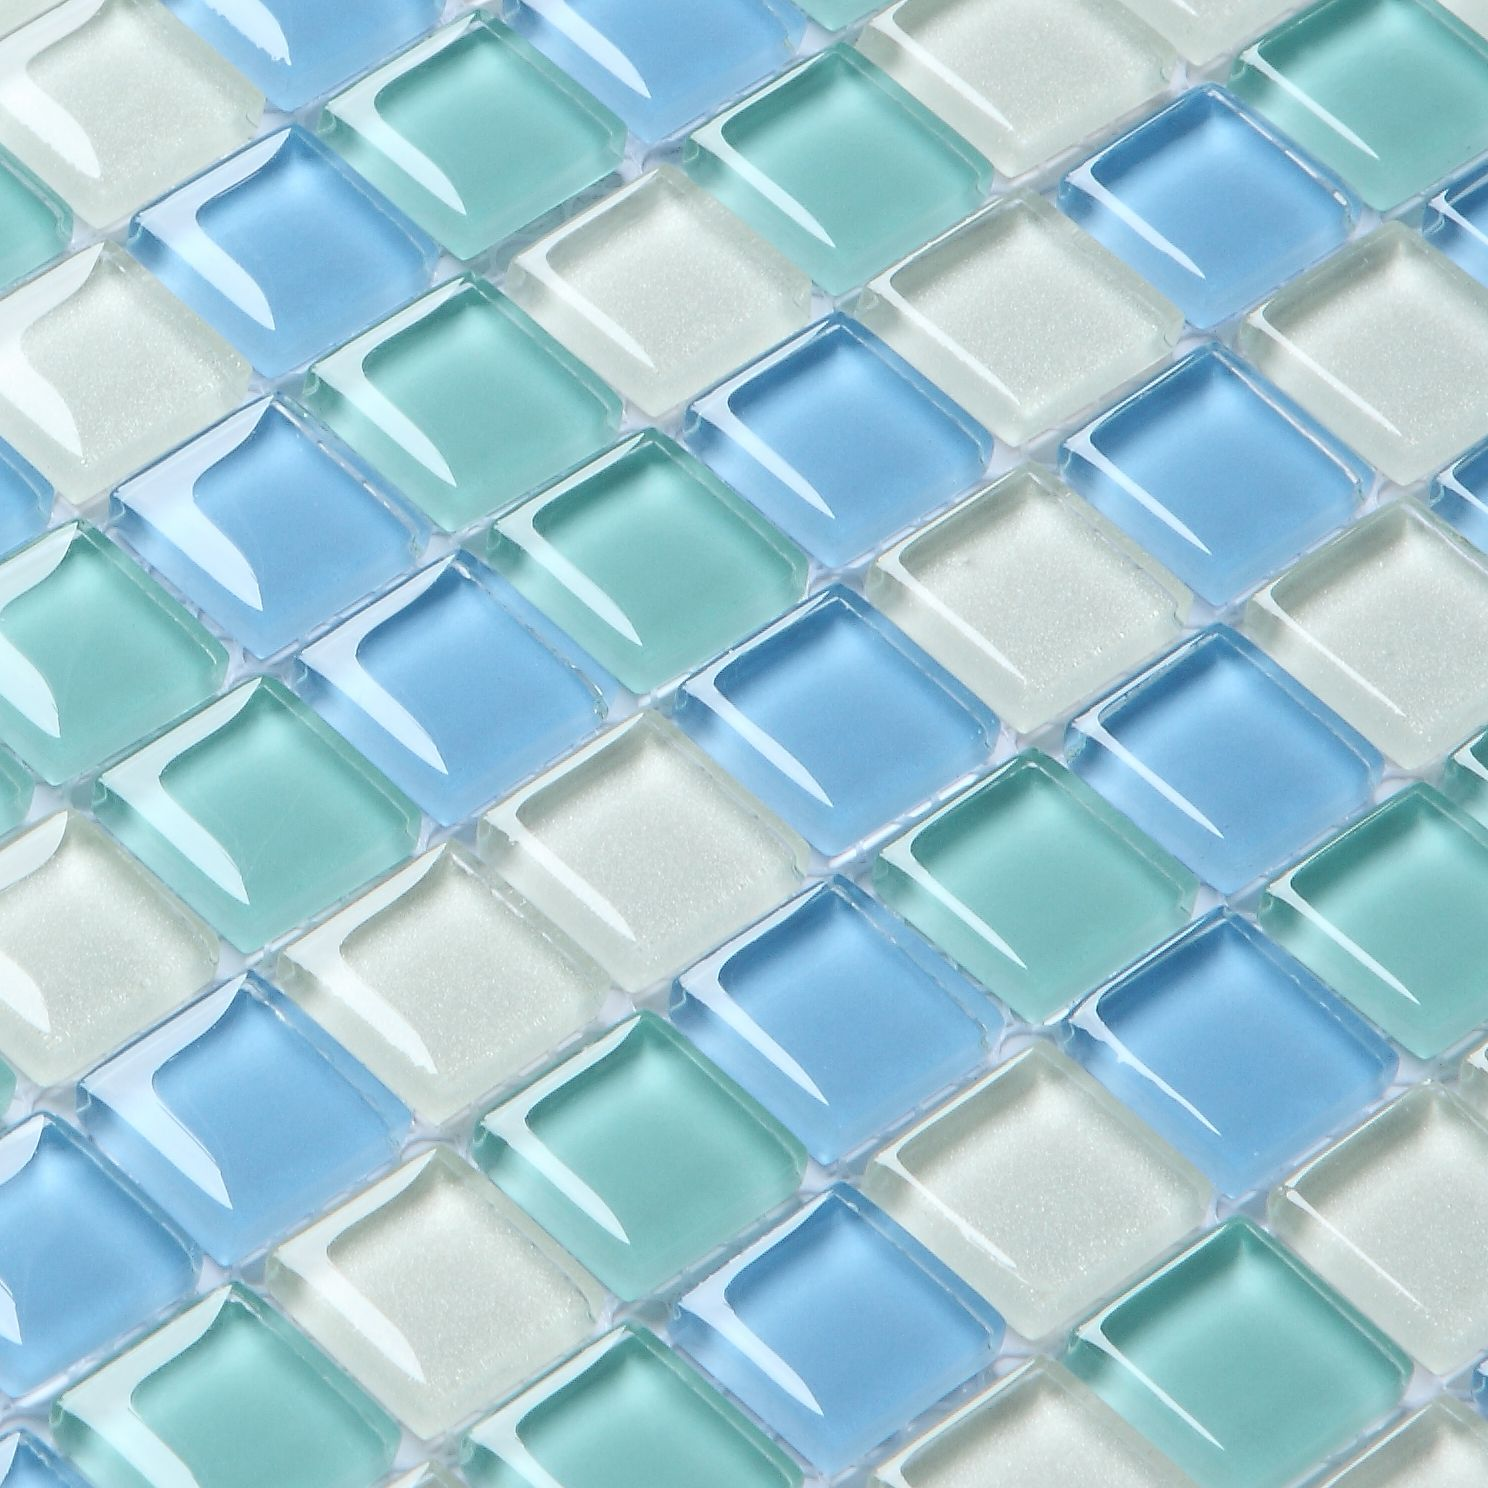 blue glass tile - Google Search | lake | Pinterest | Blue glass tile ...